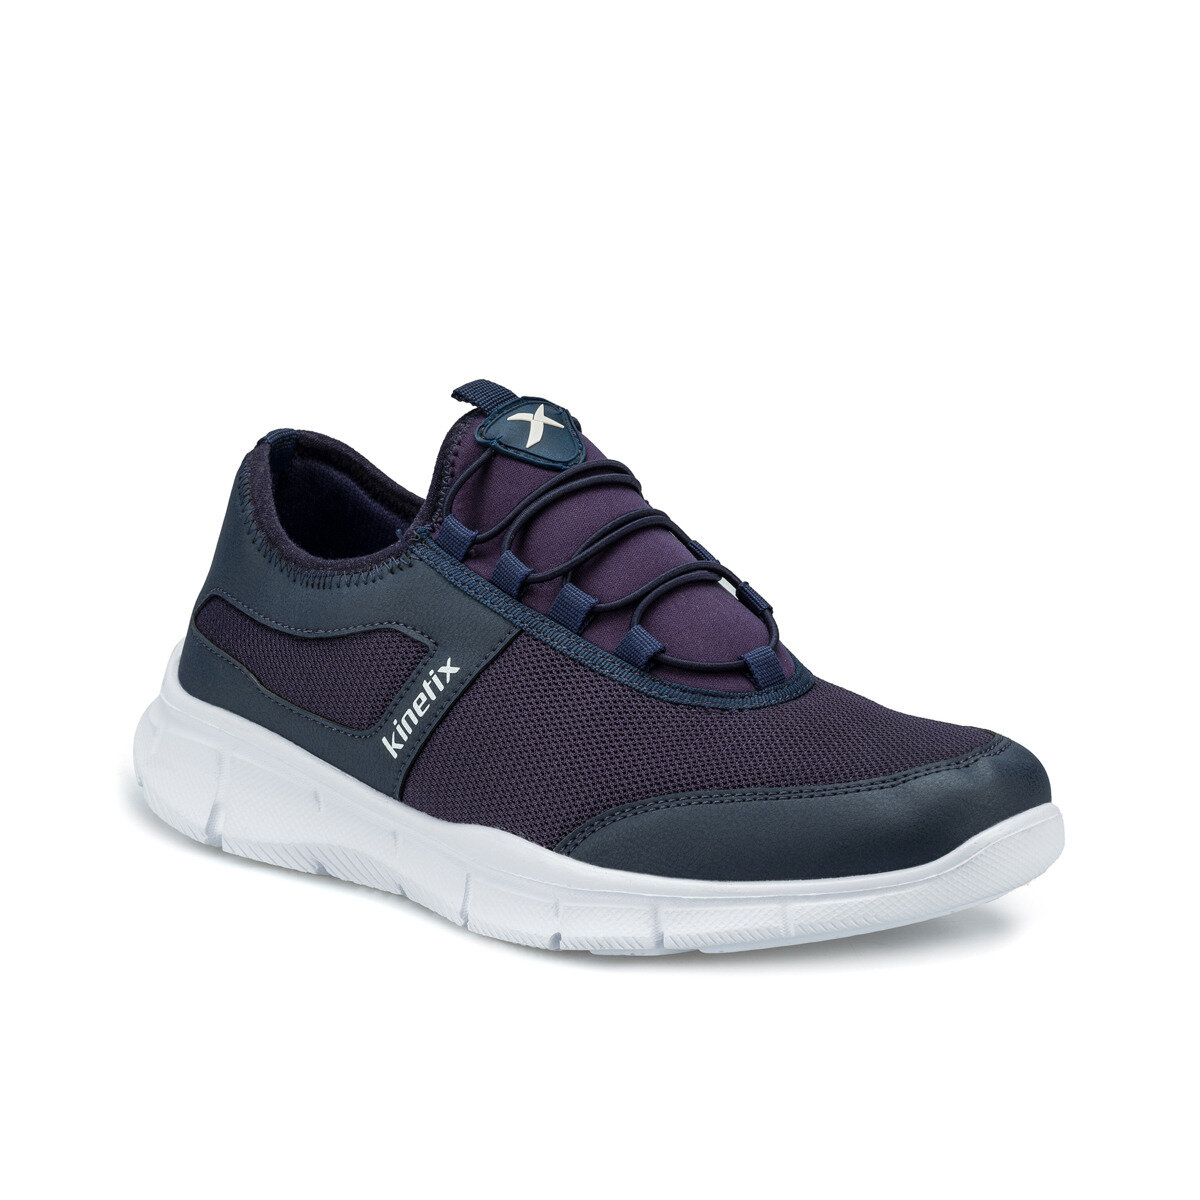 FLO AIRSHIP Navy Blue Men 'S Comfort Shoes KINETIX